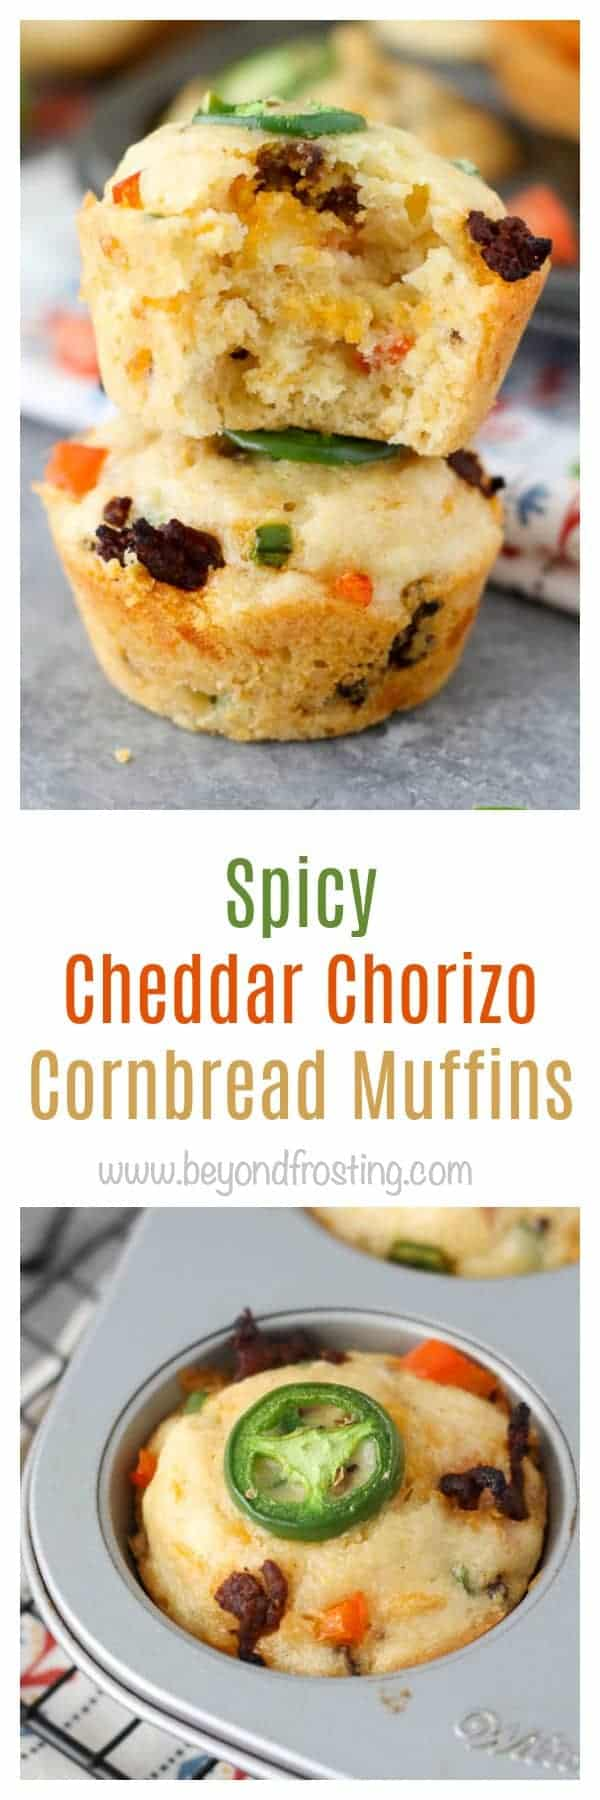 These tex-mex inspired Spicy Cheddar Chorizo Cornbread Muffins are stuffed full of chorizo, red peppers, jalapeños and cheddar cheese.